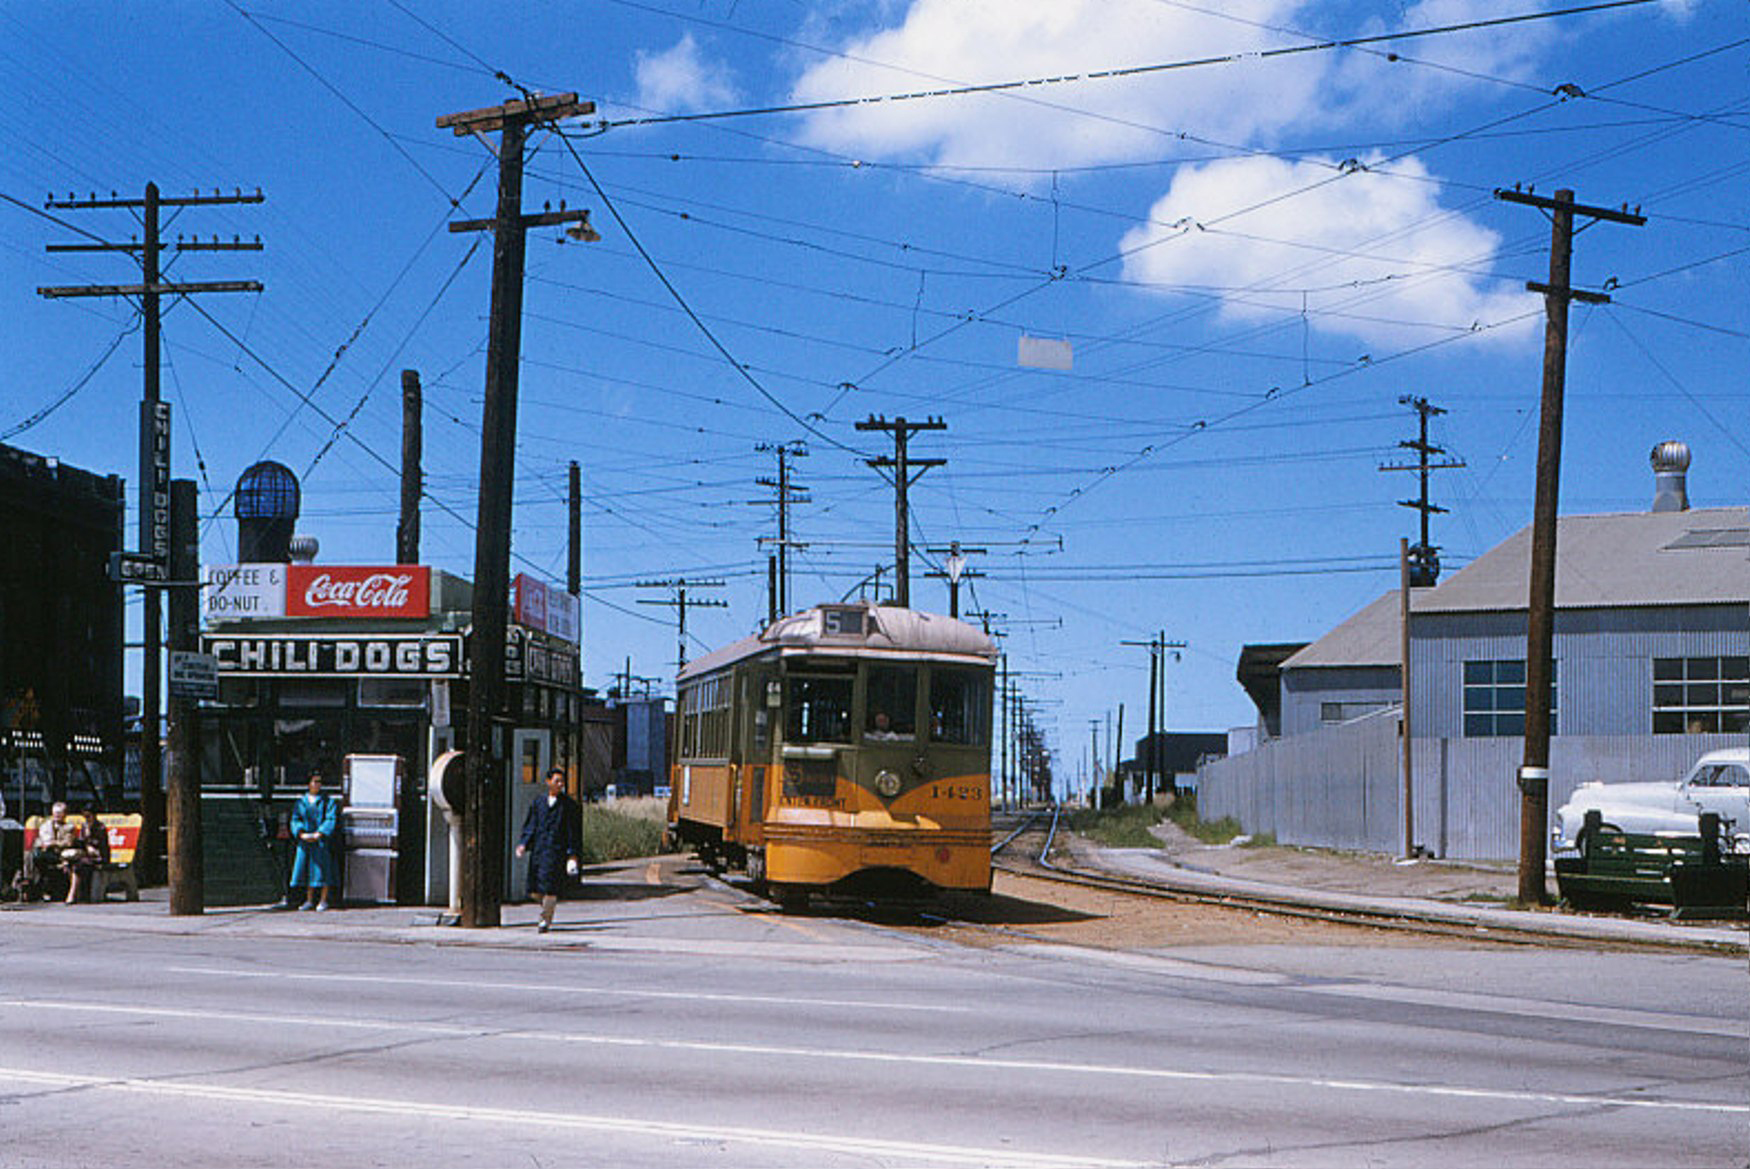 008 - Old - LATL 5 Line Car 1423 Northbound At Prw. & Crenshaw Bl. 19550507 (2)